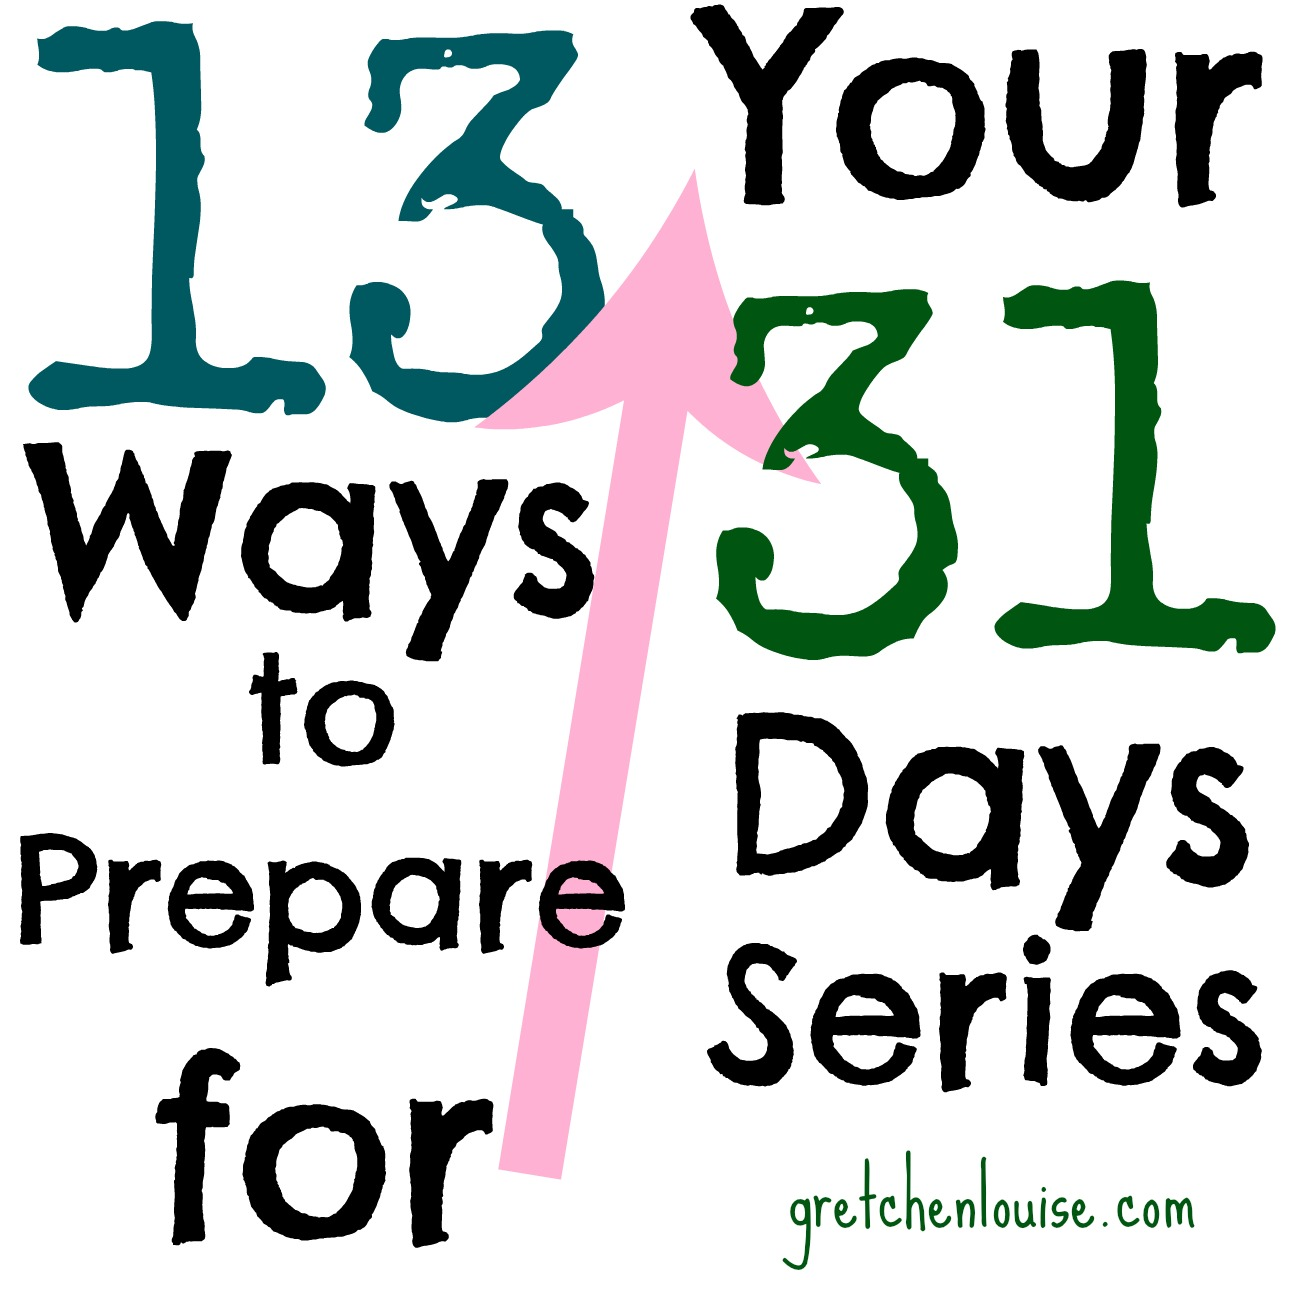 13 Ways to Prepare for Your #Write31Days Series